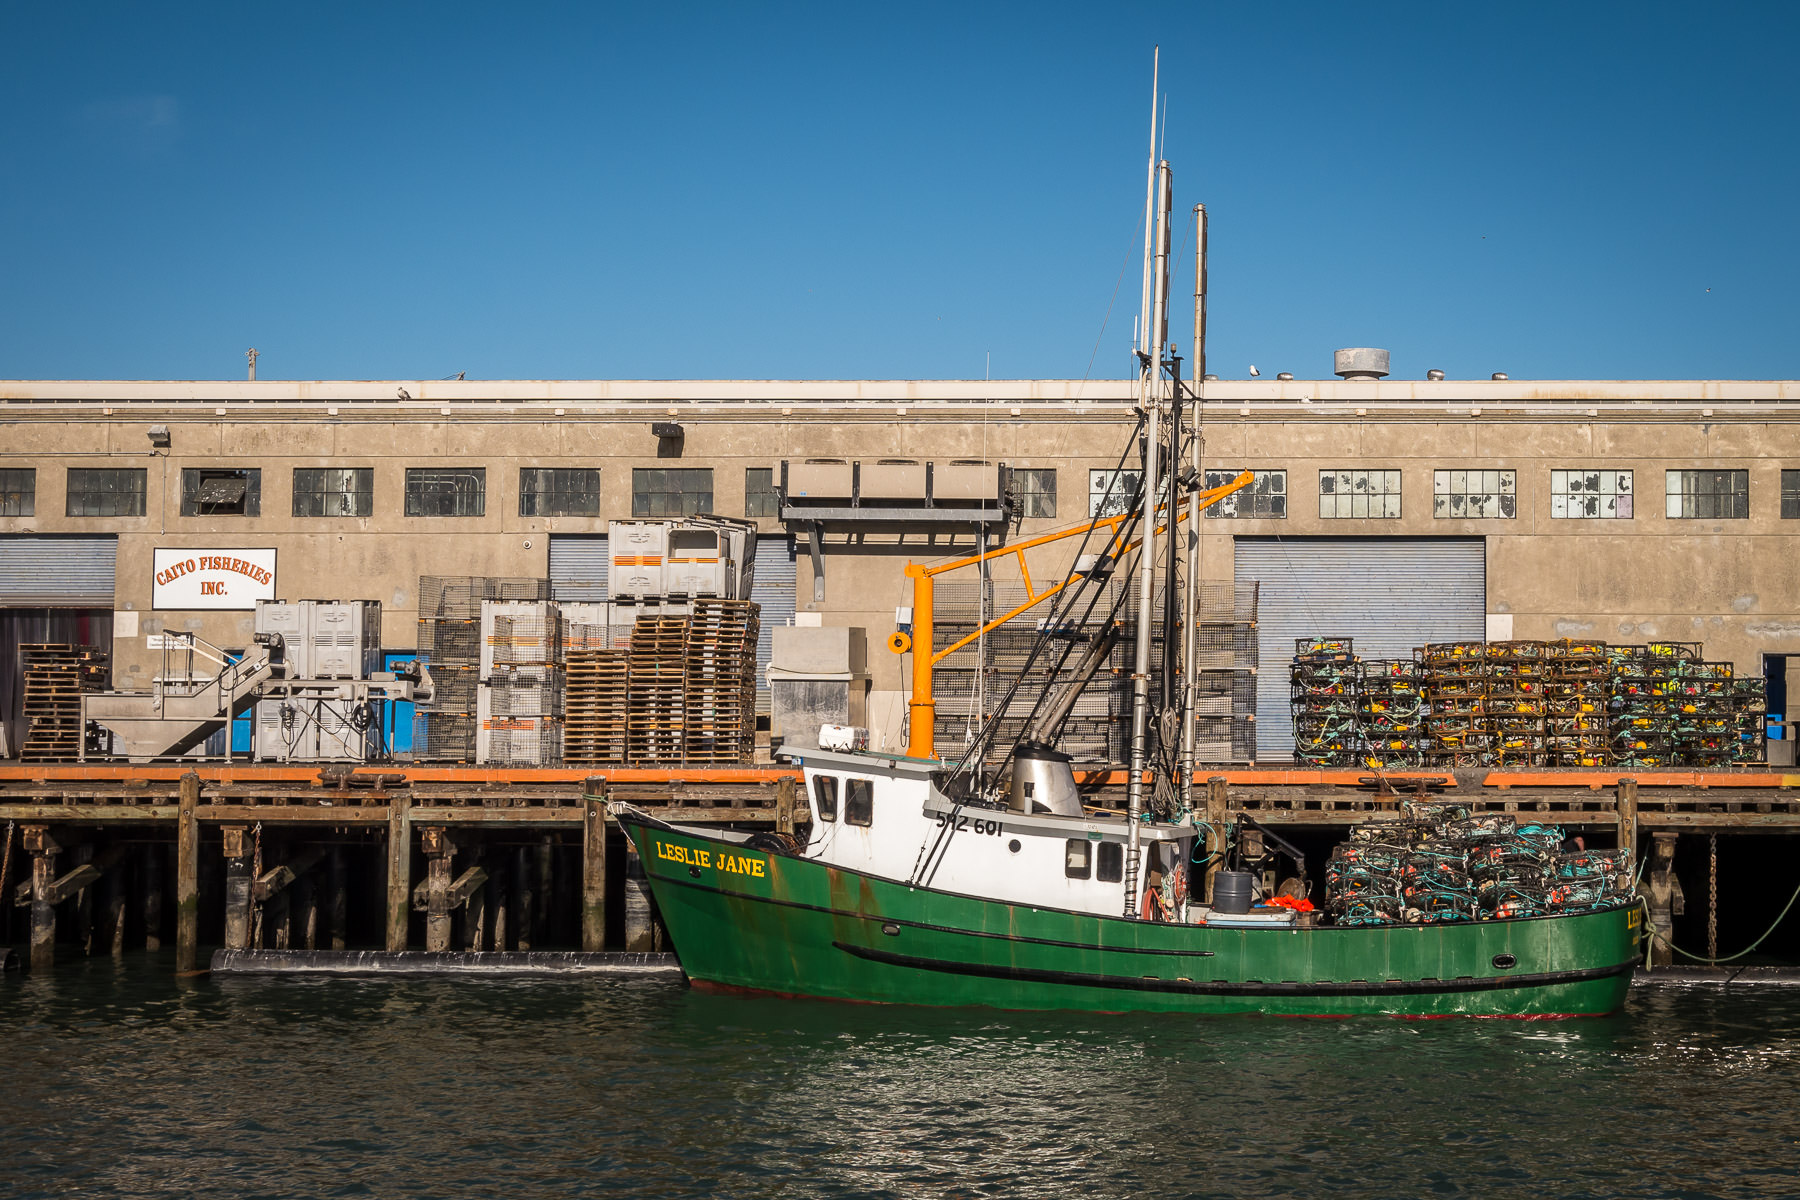 A dungeness crab fishing boat loaded with crab pots prepares to head out for the day at San Francisco's Fisherman's Wharf.